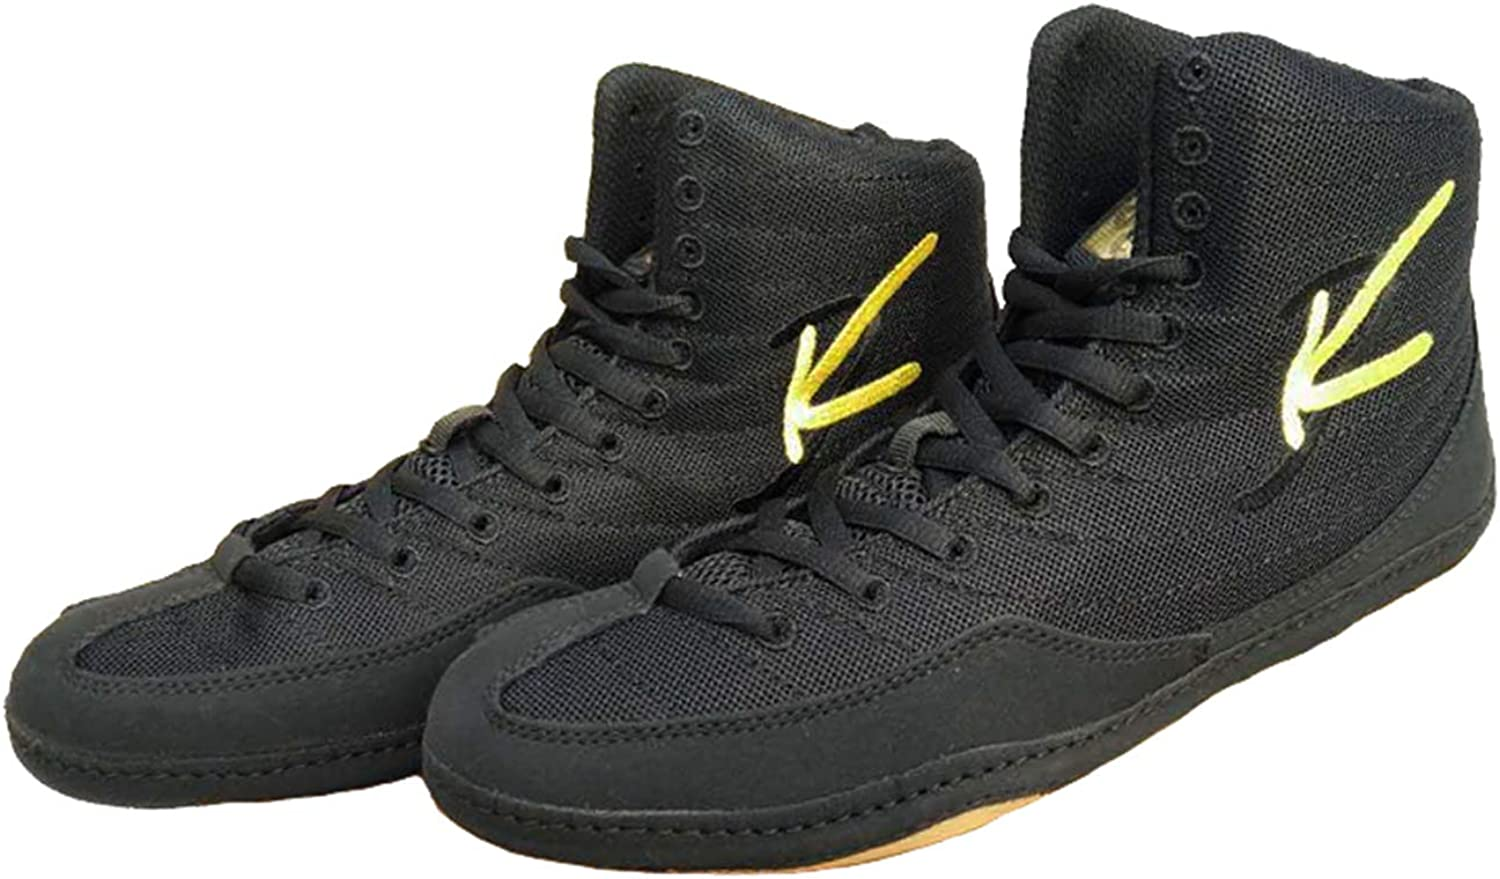 Day Key Breathable Wrestling shoes for Men, Youth, Kids, Boys